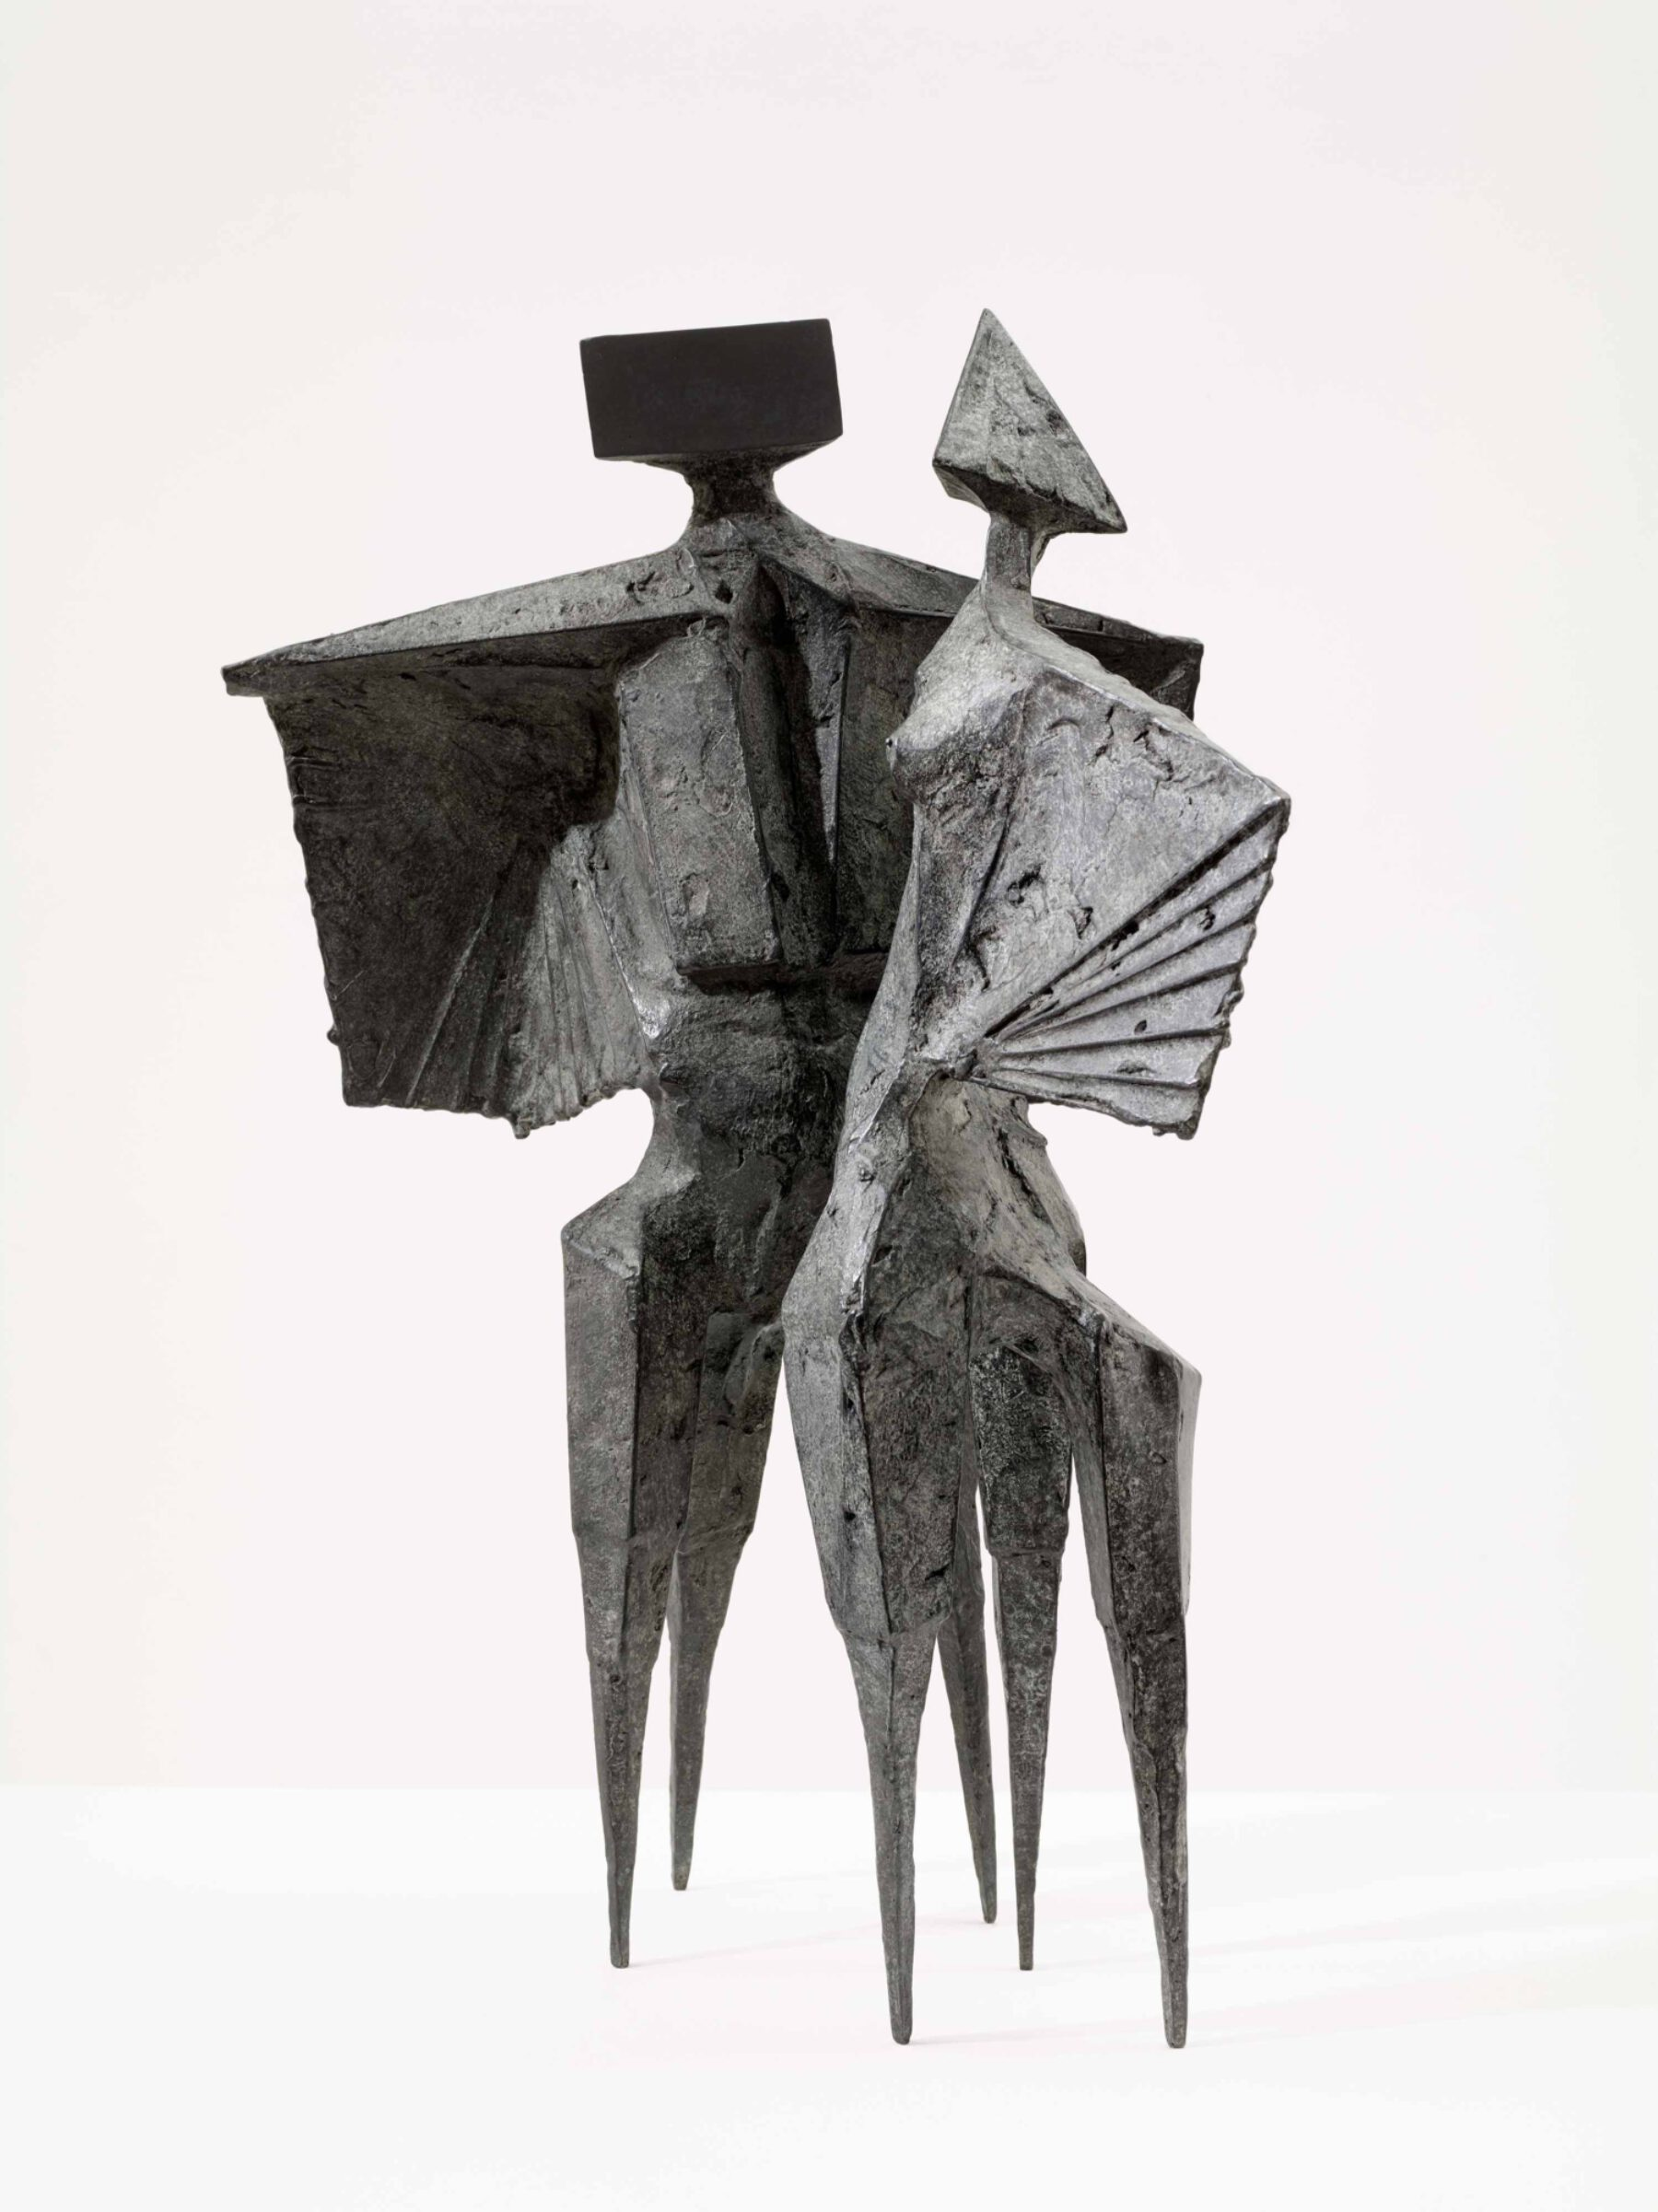 Two Winged Figures (2)